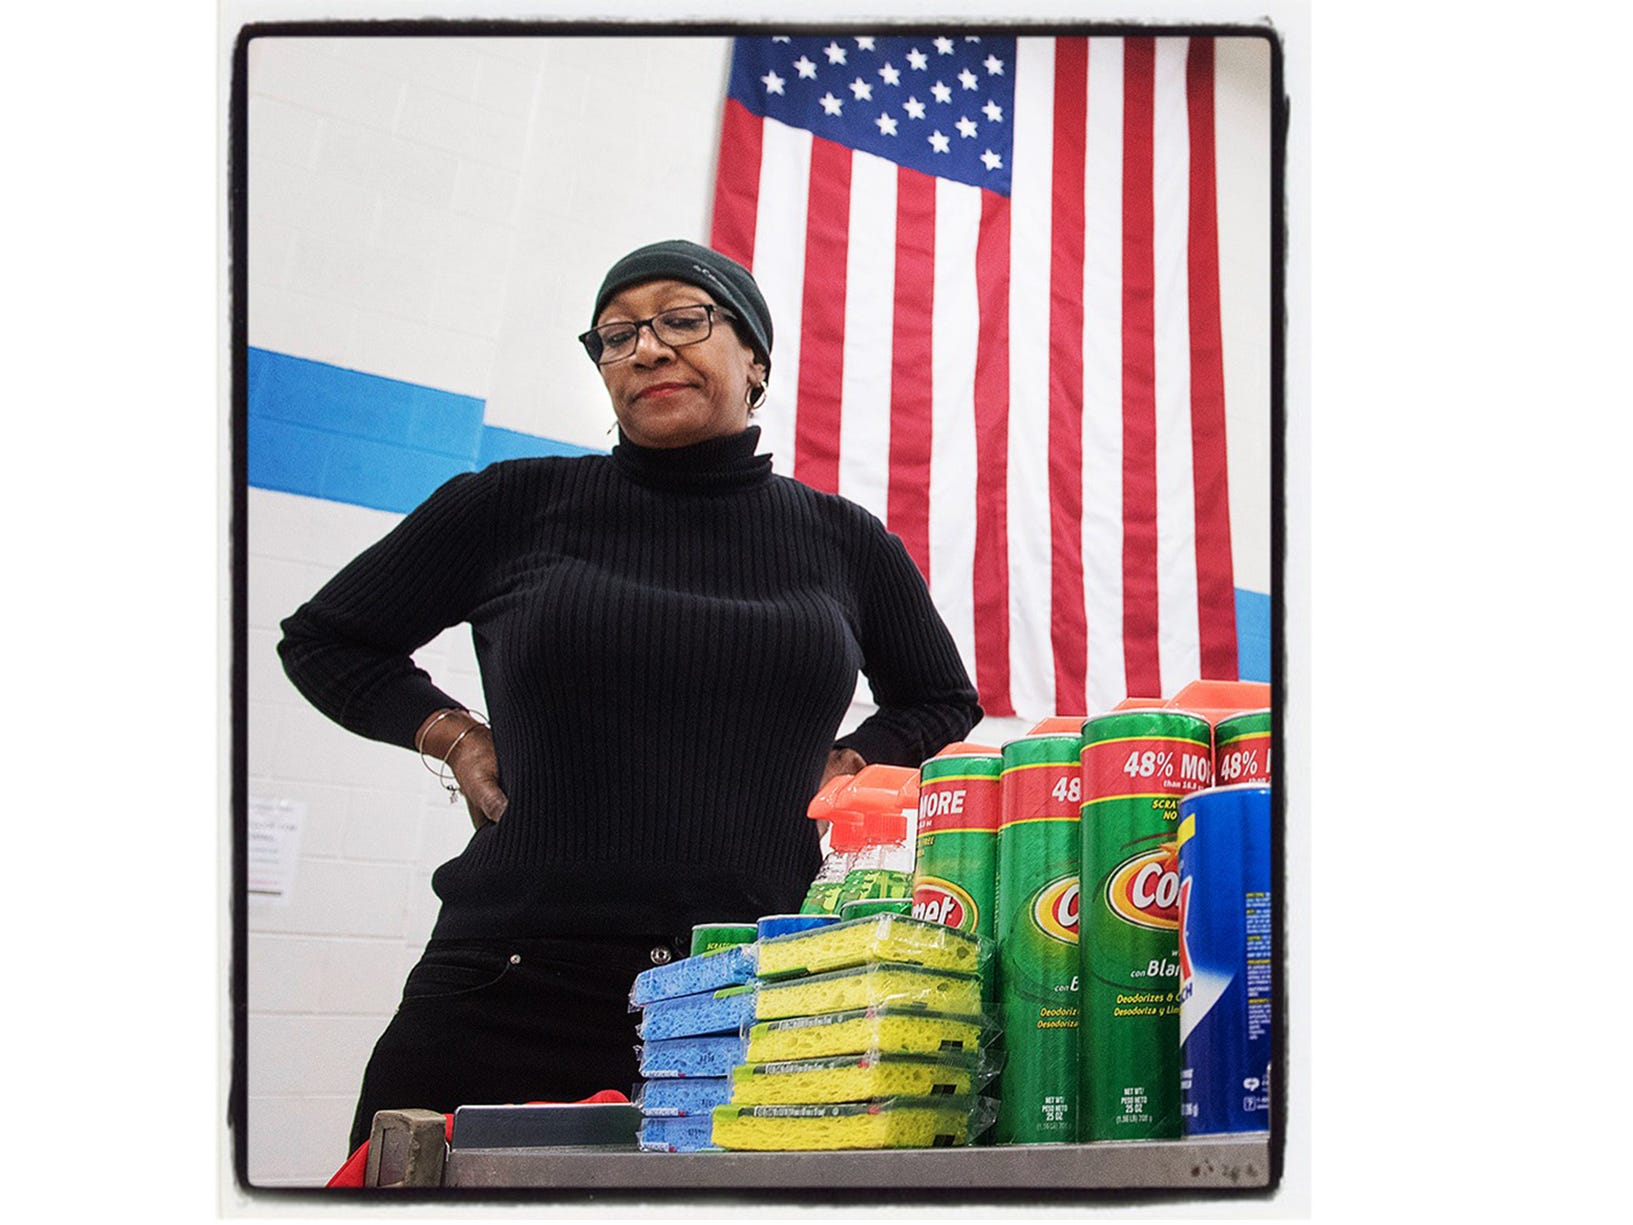 Volunteer Gail Monk takes a moment for a break before delivering more cleaning supplies to students packing for St John Lutheran School's veterans project. Westland, Michigan.